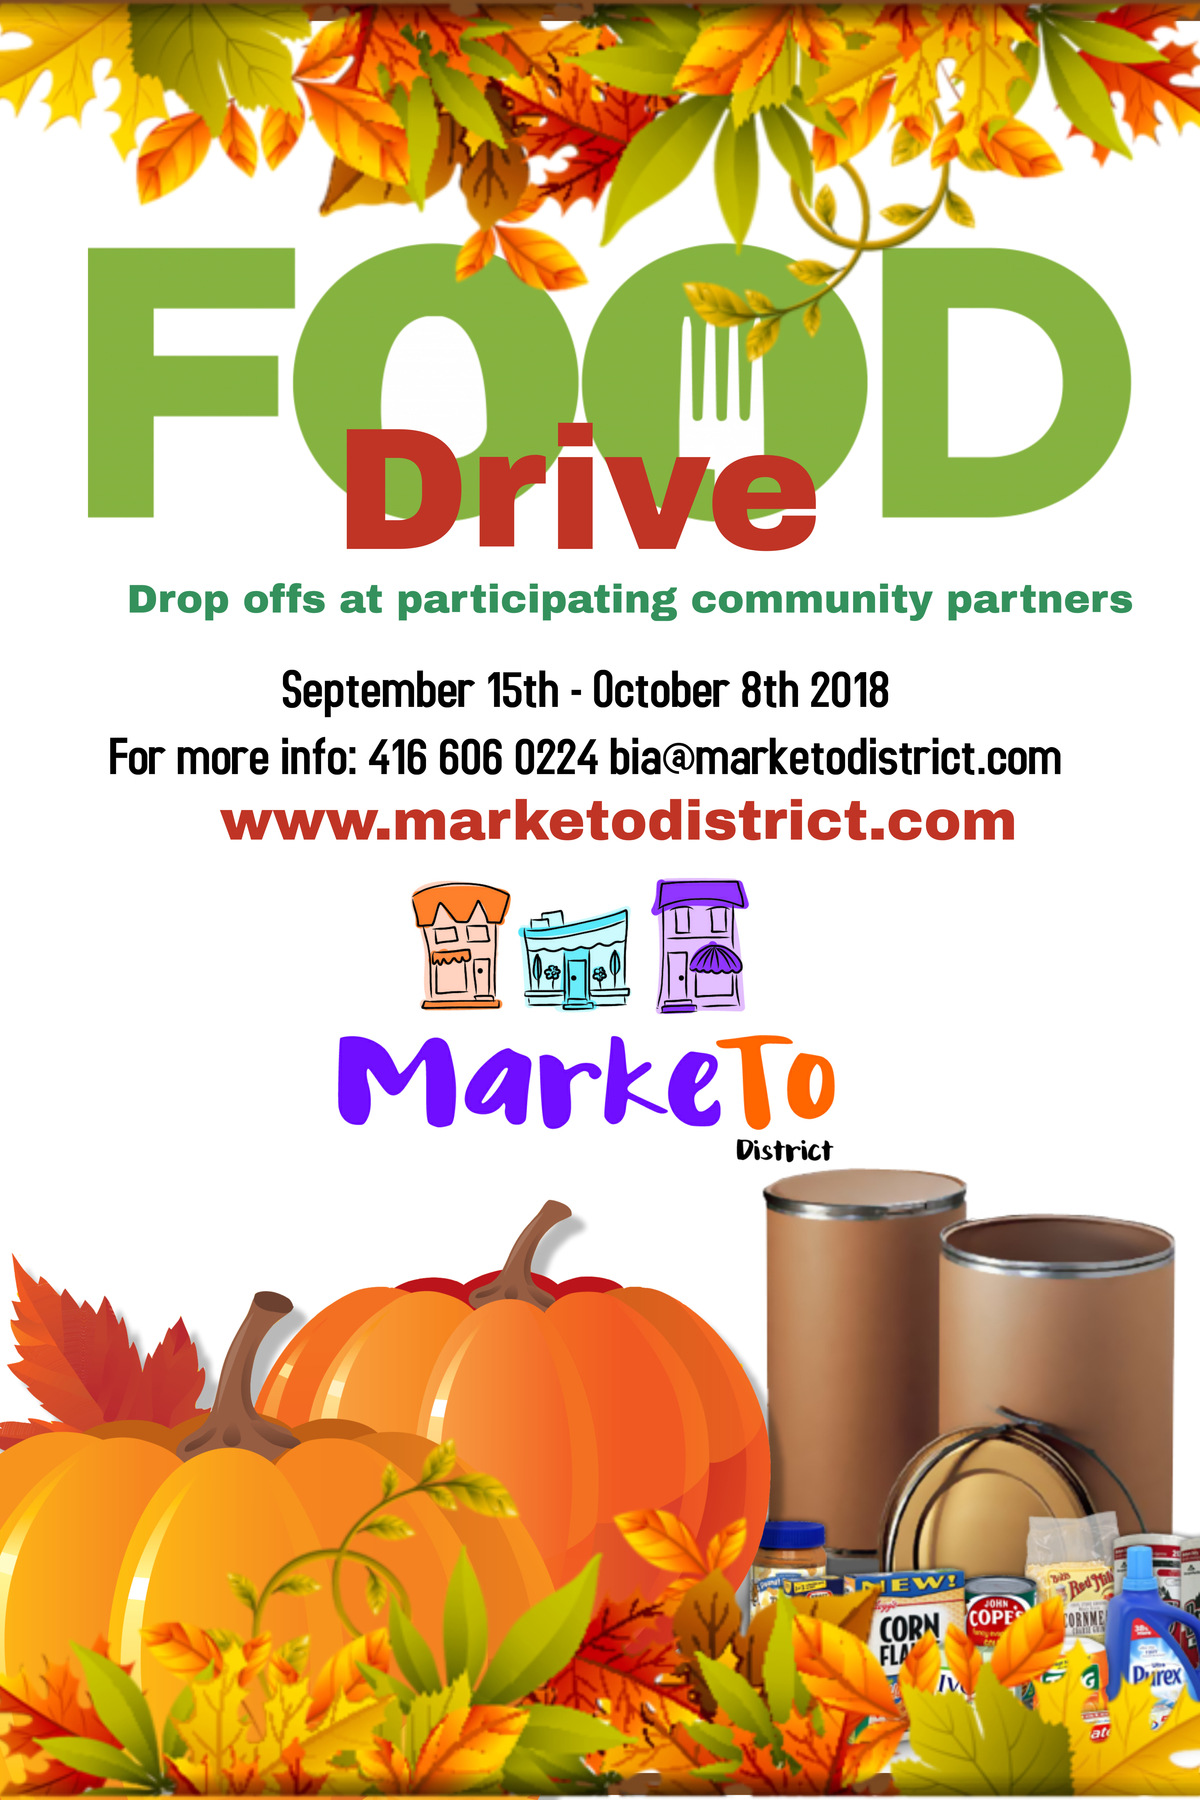 MarkeTo District Fall Food Drive September 15 - October 8 2018